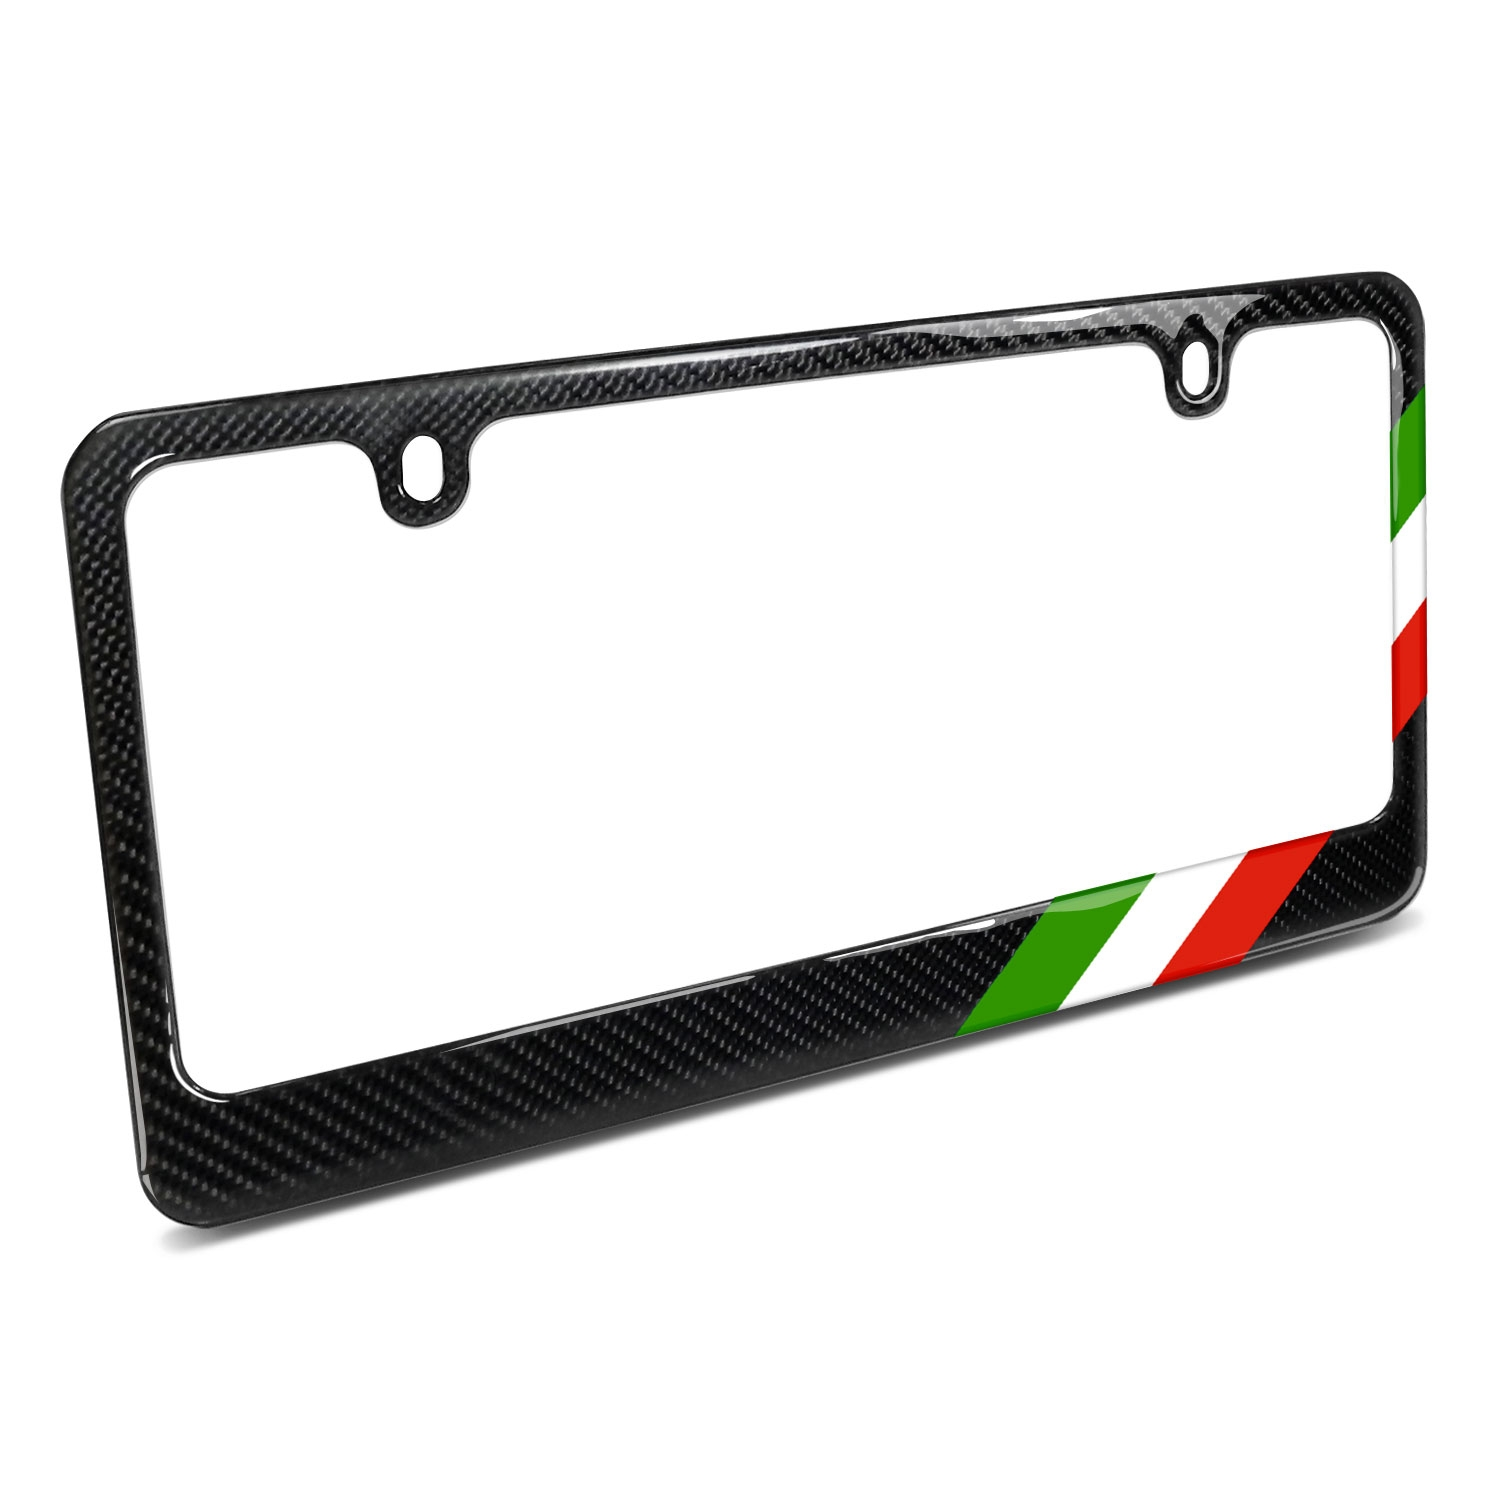 Real Black Carbon Fiber Italy Flag Off-center in Sports Stripe License Plate Frame